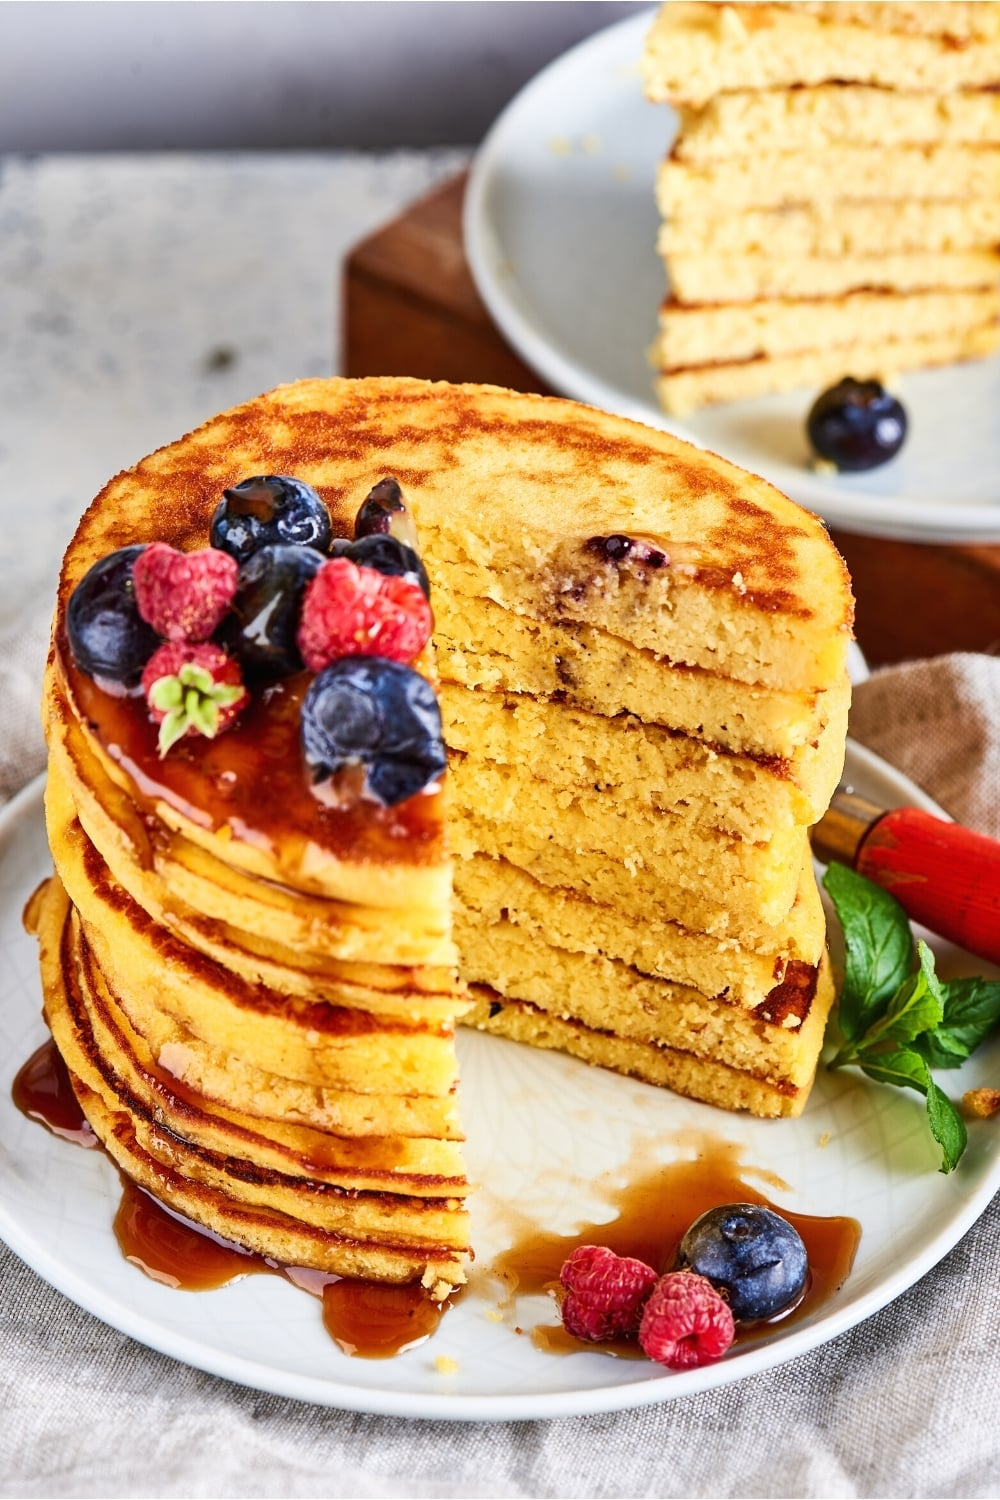 Eight cream cheese pancakes stacked on top of one another on a white plate. There is a triangle cut out of the pancakes and the inside of the pancake stack is showing.